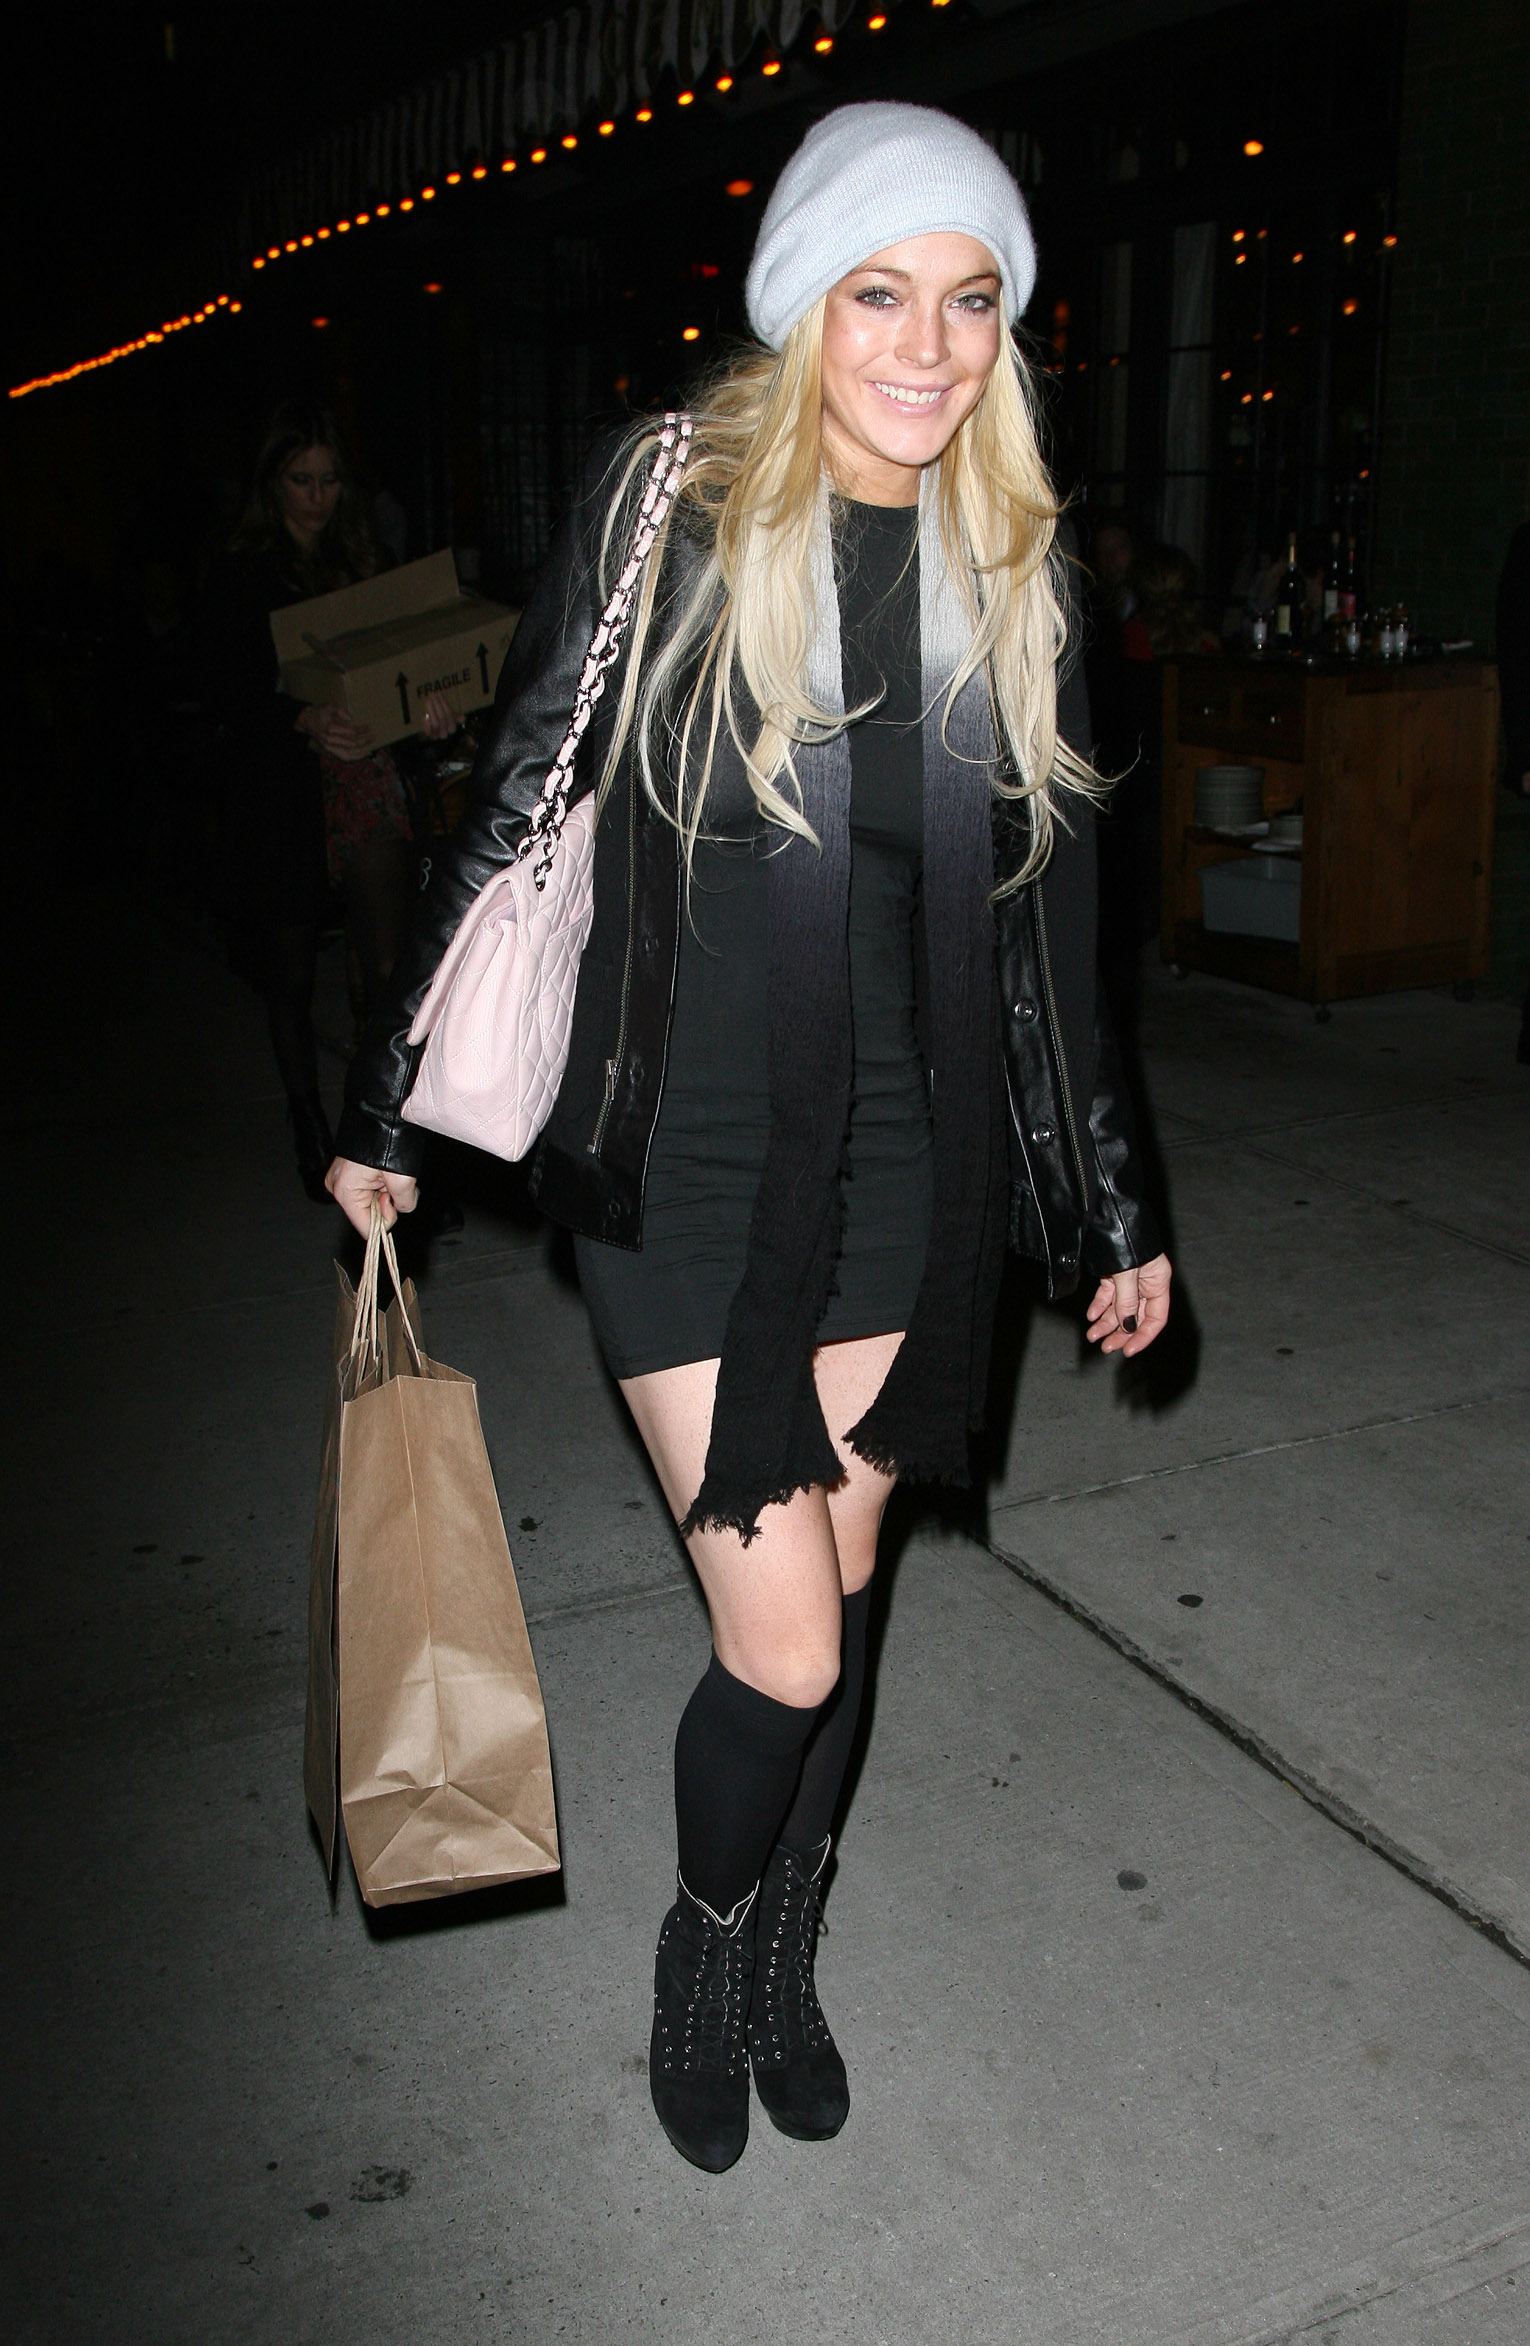 67387_Lindsay_Lohan_out_to_dinner_in_New_York_City-4_122_565lo.jpg